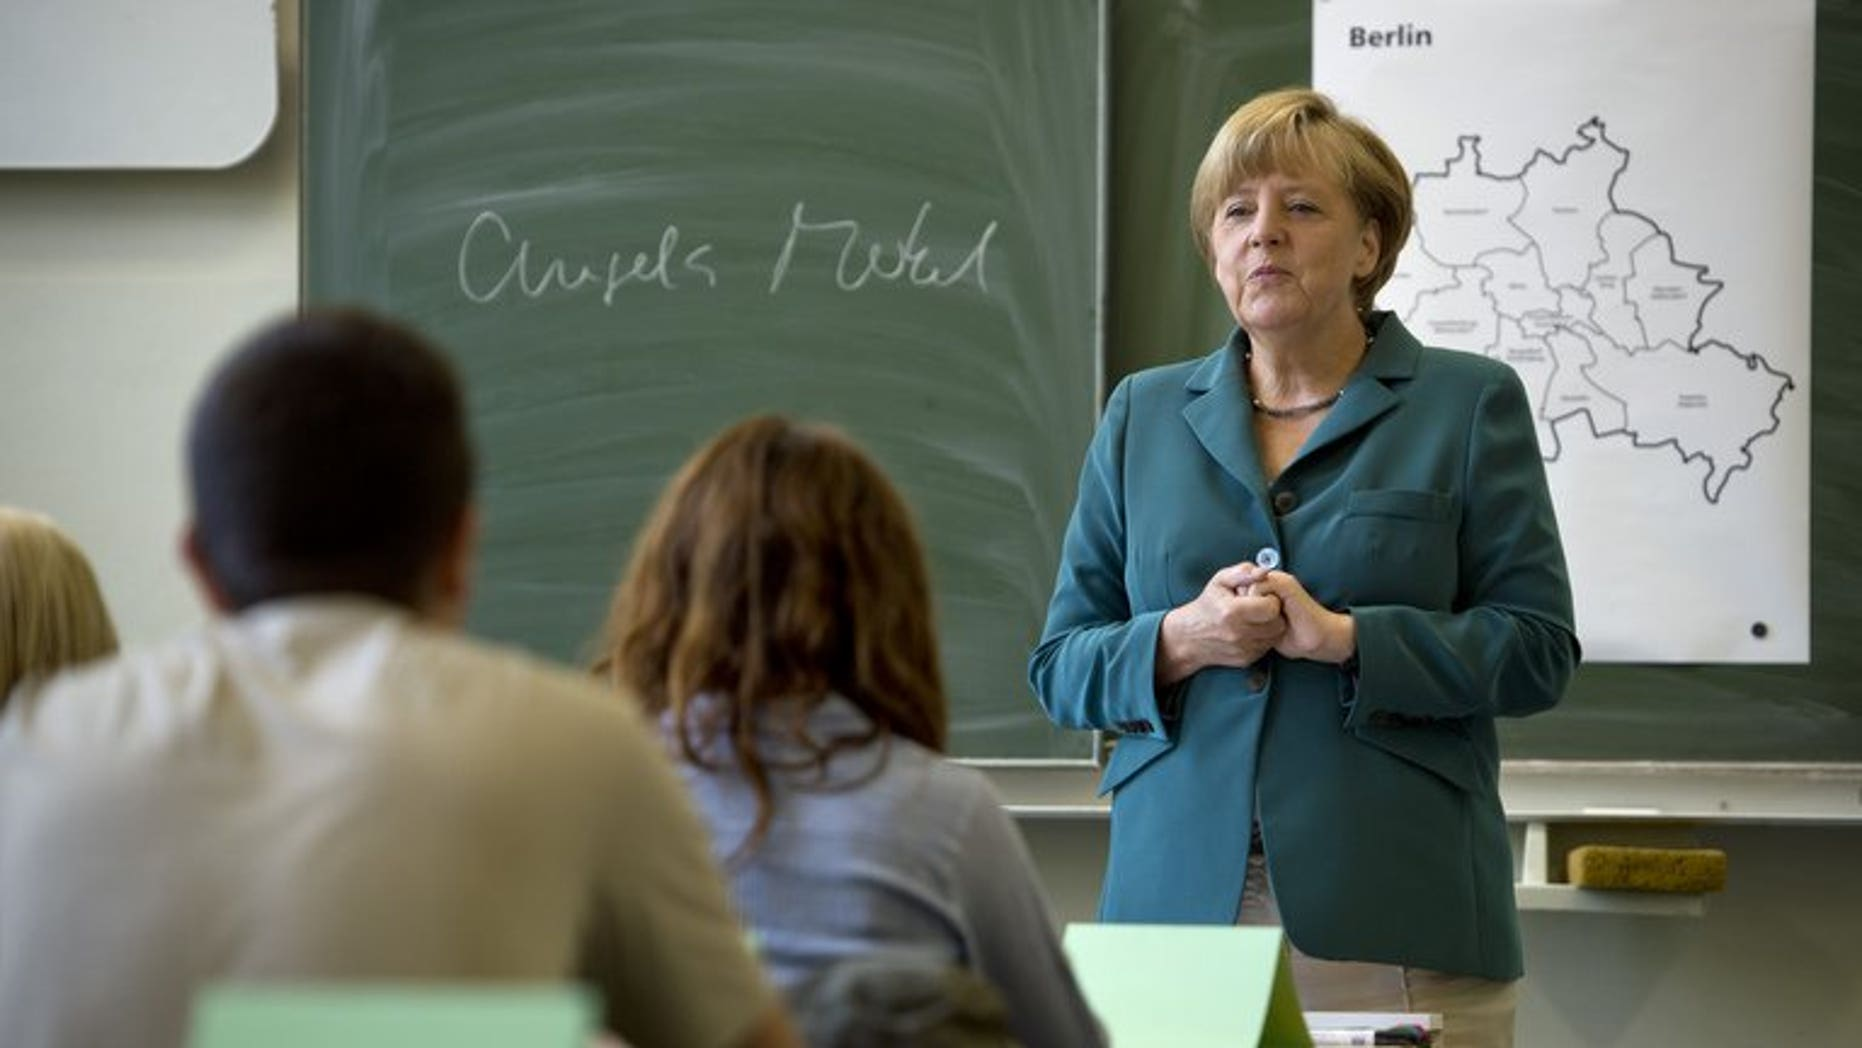 German Chancellor Angela Merkel talks to students during her visit to the Heinrich Schliemann secondary school in Berlin, on August 13, 2013. Merkel, campaigning for a third term, filled in as a school history teacher on the 52nd anniversary of the building of the Berlin Wall.